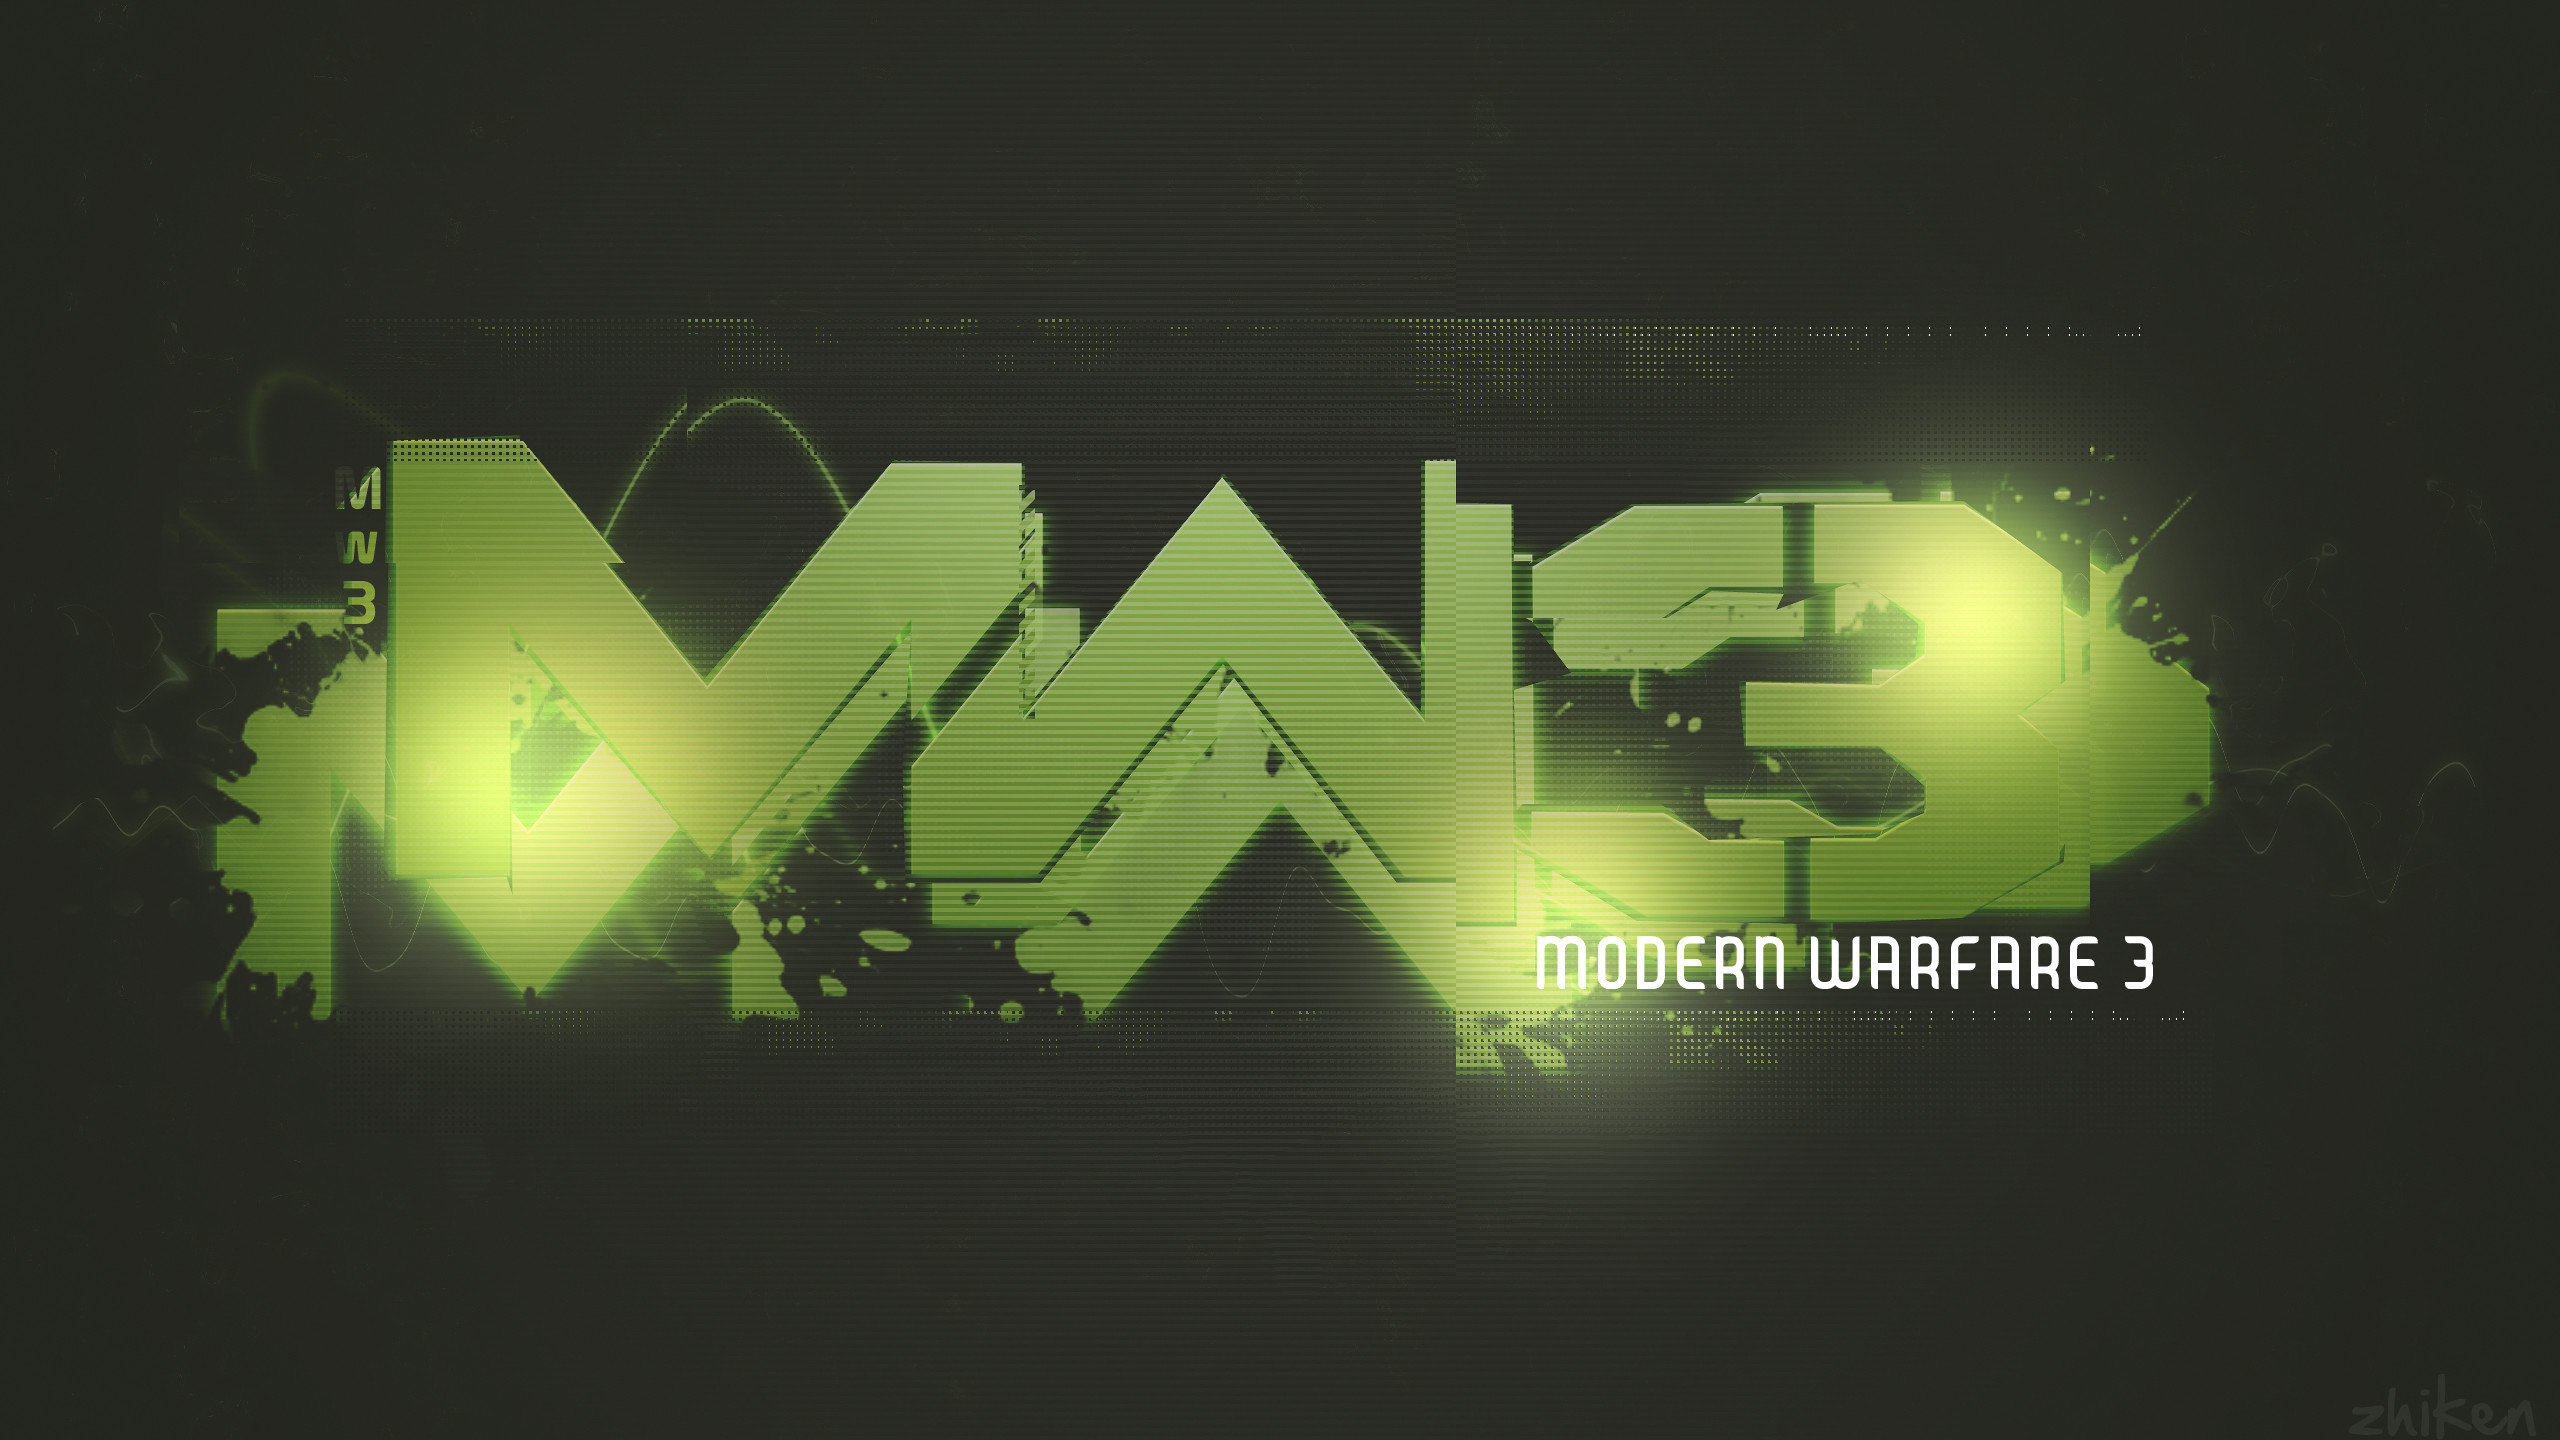 2048x1152 Youtube Channel Art Wallpaper 89 Images